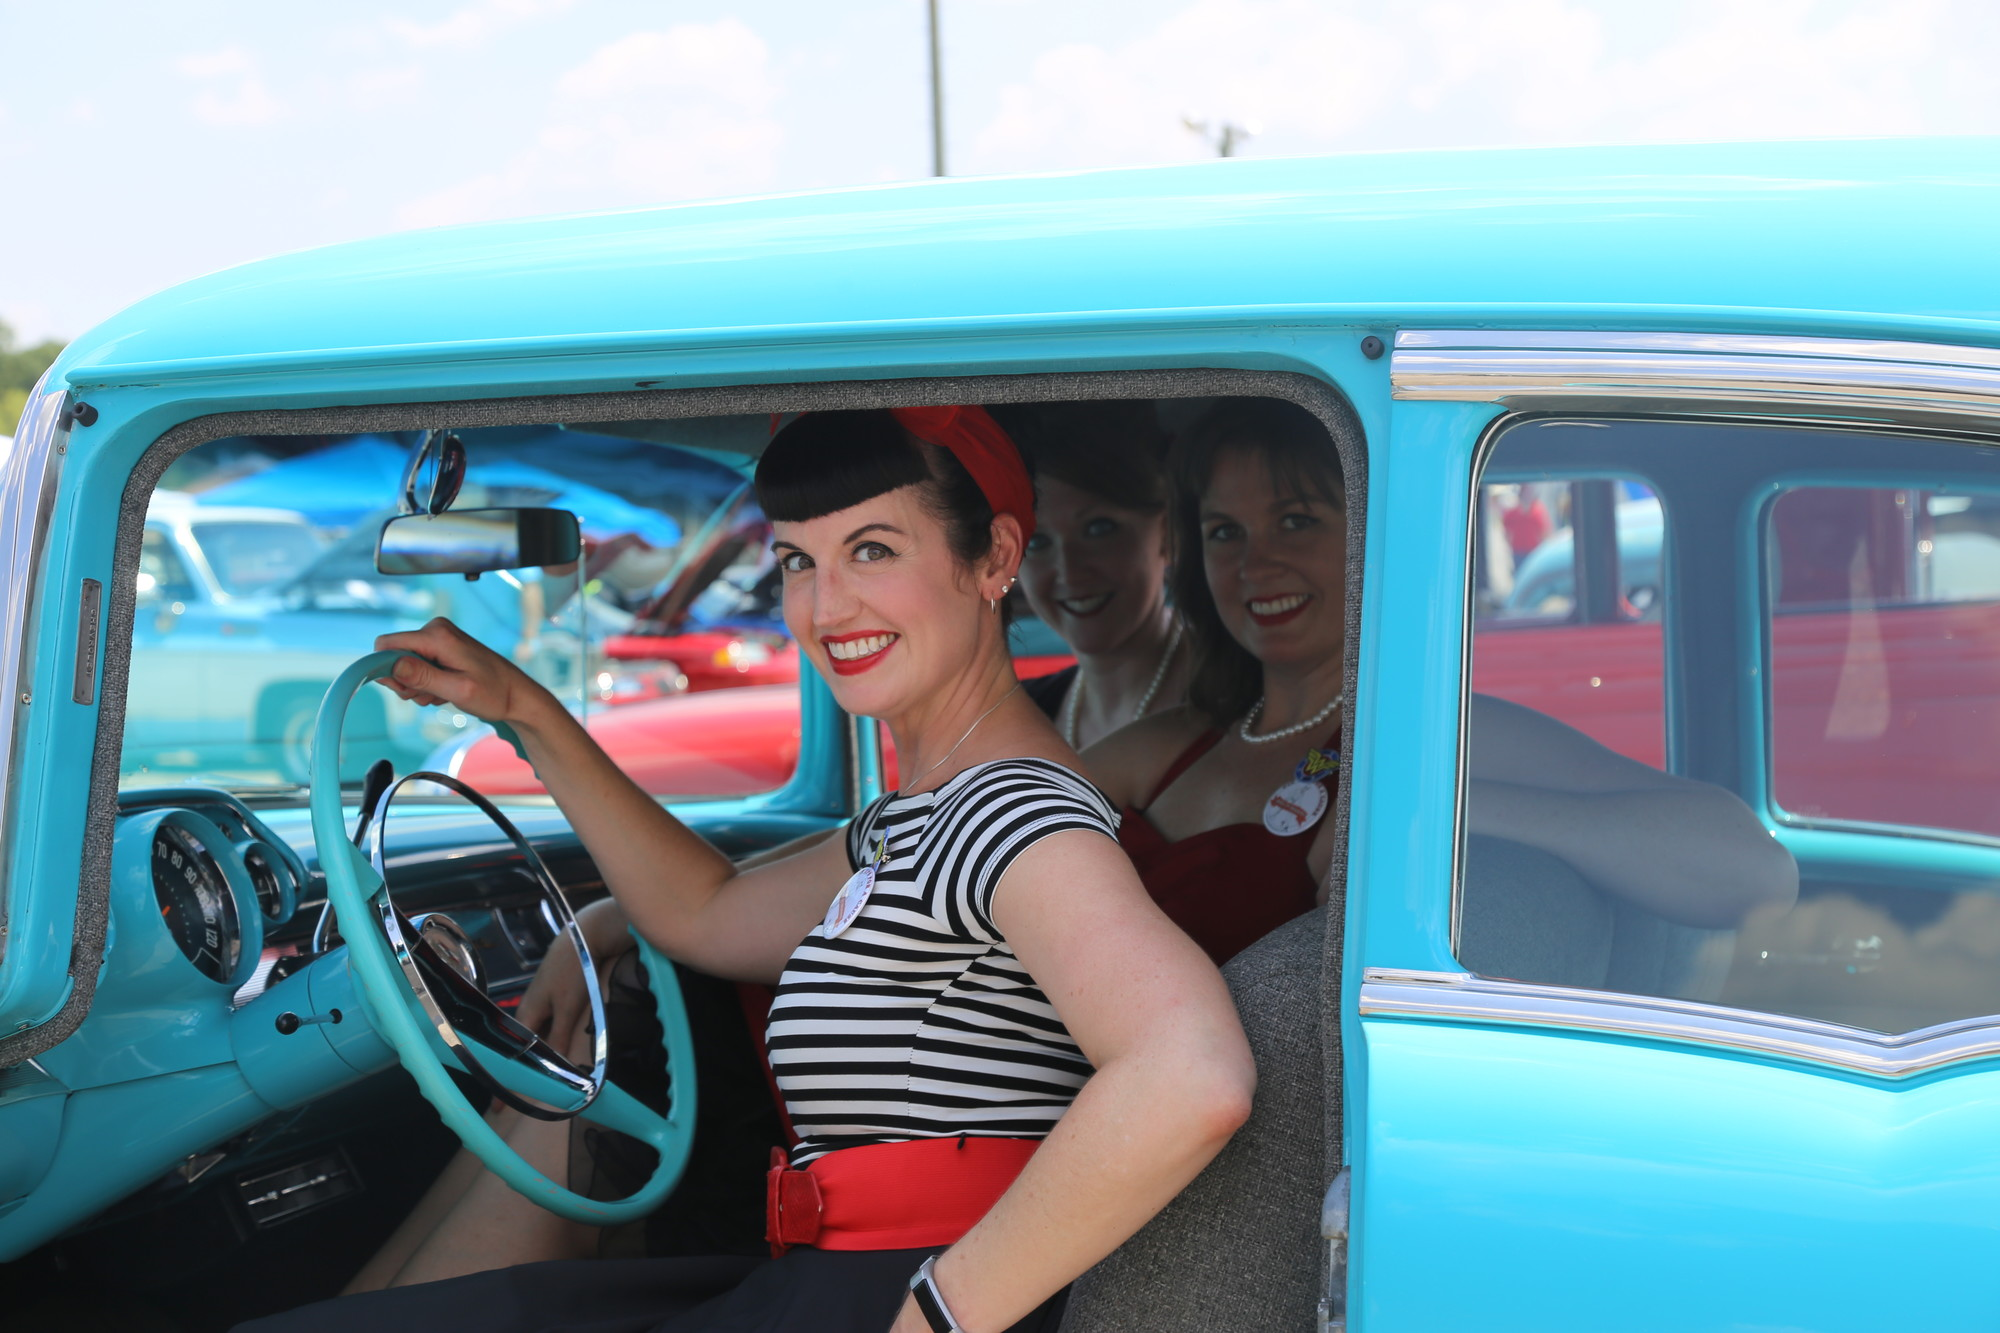 PHOTOS BY KAYLA ROBINS / THE SUMTER ITEMJennifer McKeel, AKA Evie La Fleur, Amy Spear, AKA Kitty Von Kittyn, and Jessica Patton, AKA General Patton, all of Pin Ups For a Cause South Carolina Chapter, try out one of the cars on display on Saturday at the Hot Pursuit BBQ Cook-off and Car Show. The group advocates for anti-bullying in Charleston.